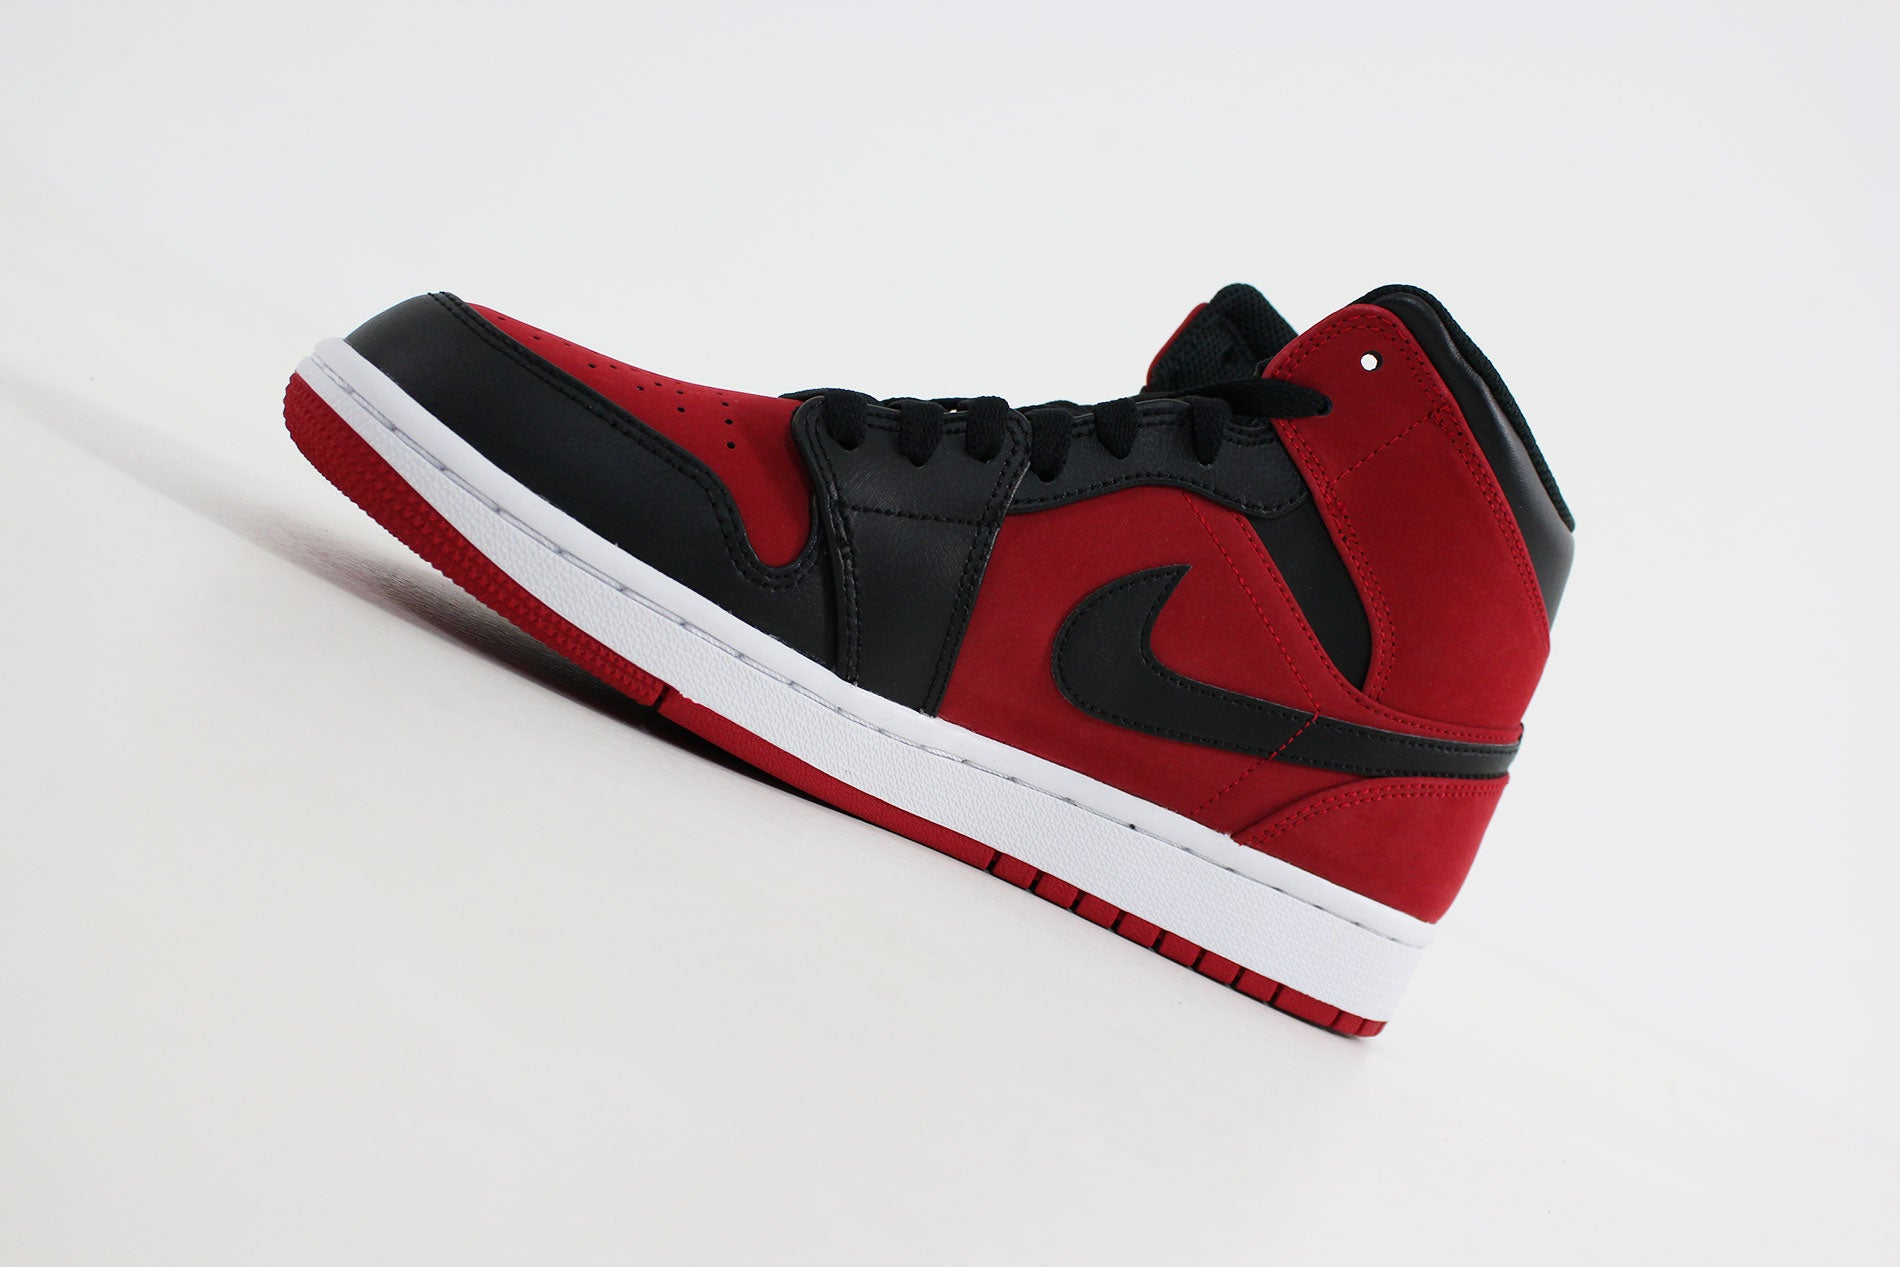 low priced adcb6 192cb Nike - Air Jordan 1 MID (Gym Red  Black-White) 554724-610